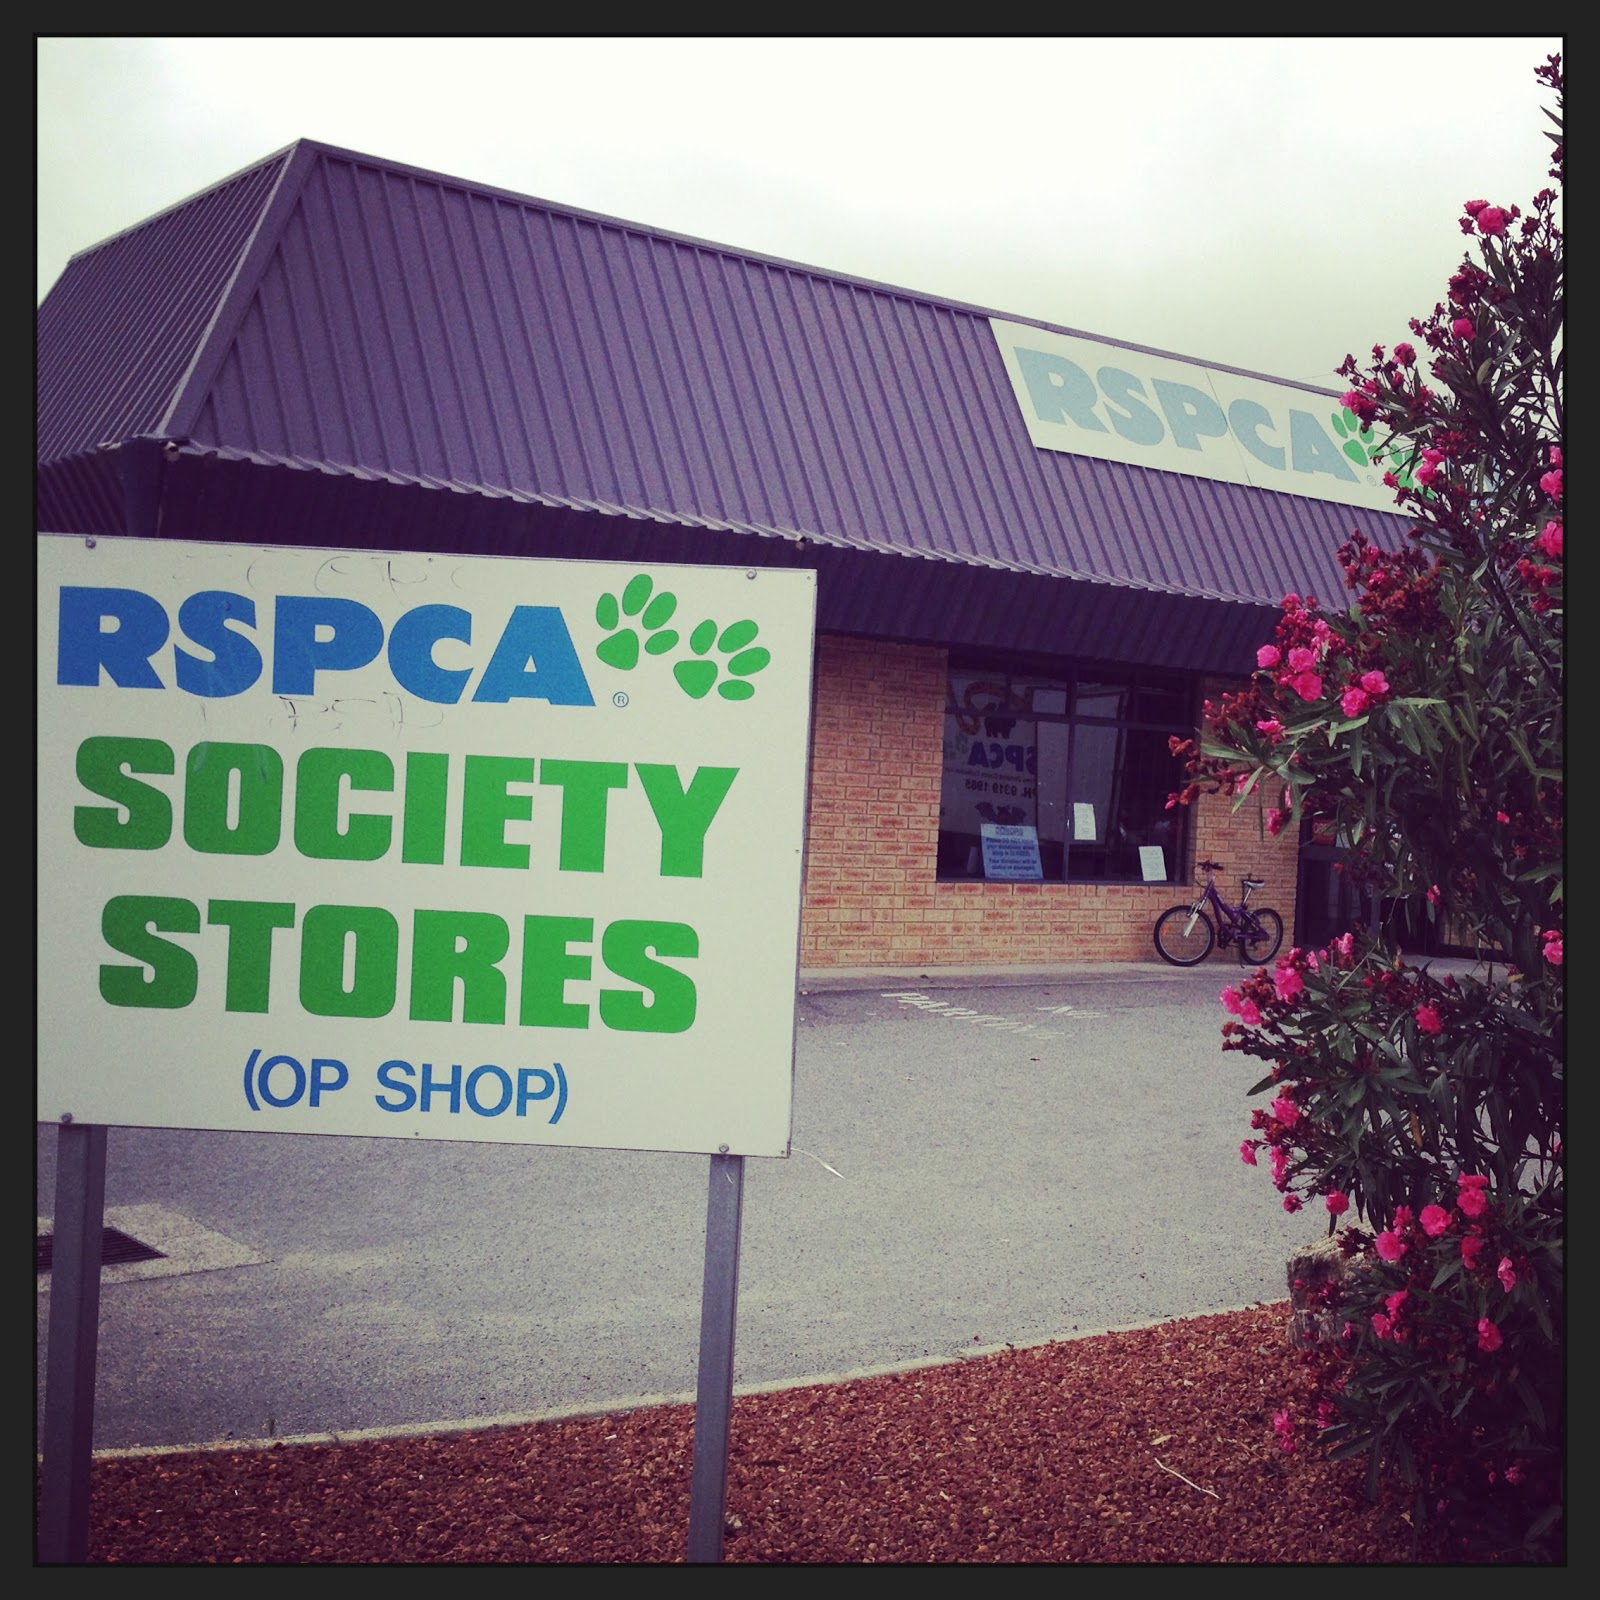 Dog Days Are Over - RSPCA Society Store Bibra Lake Review